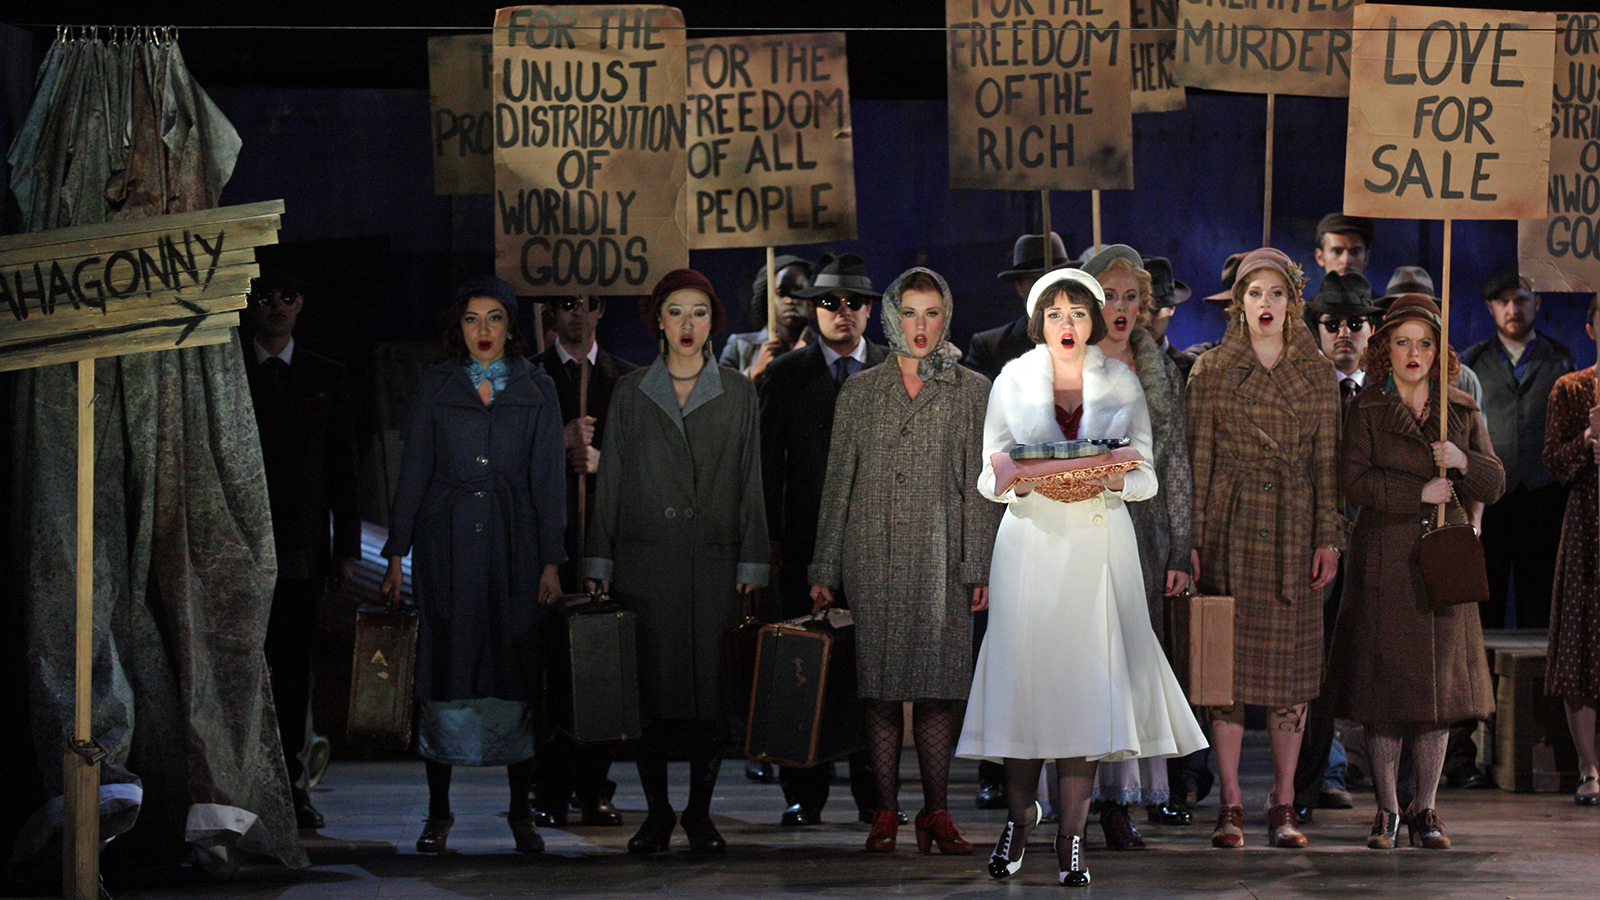 Brecht, interruptions and epic theatre - The British Library